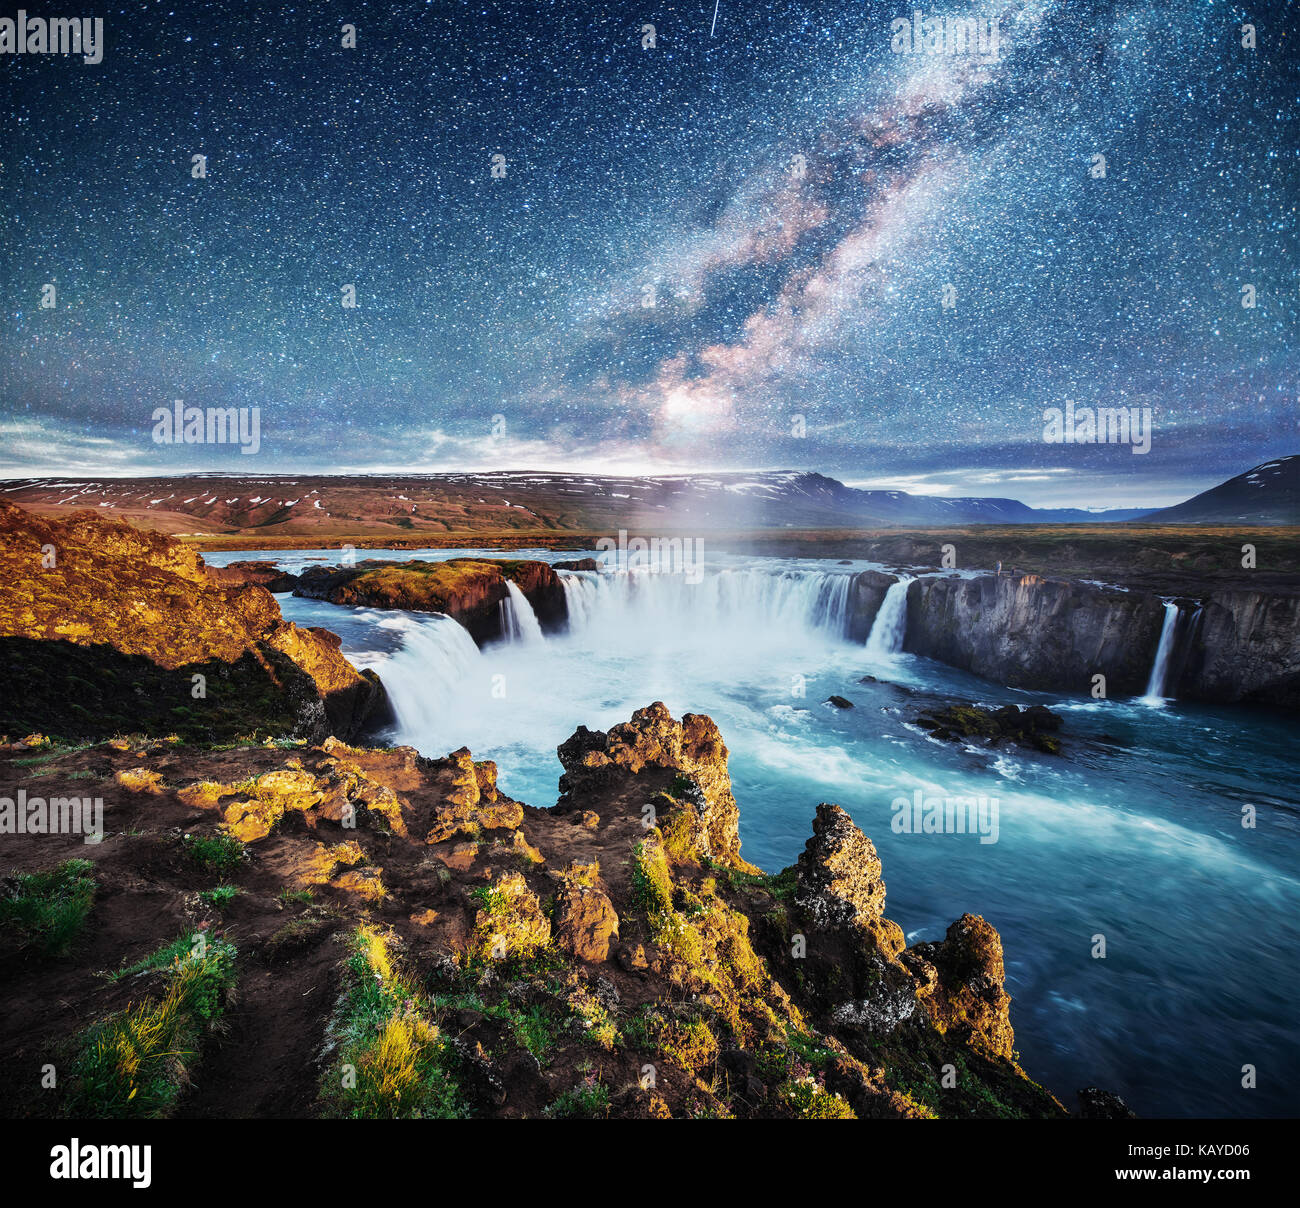 Hodafoss very beautiful Icelandic waterfall. It is located in the north near Lake Myvatn and the Ring Road. Fantastic - Stock Image